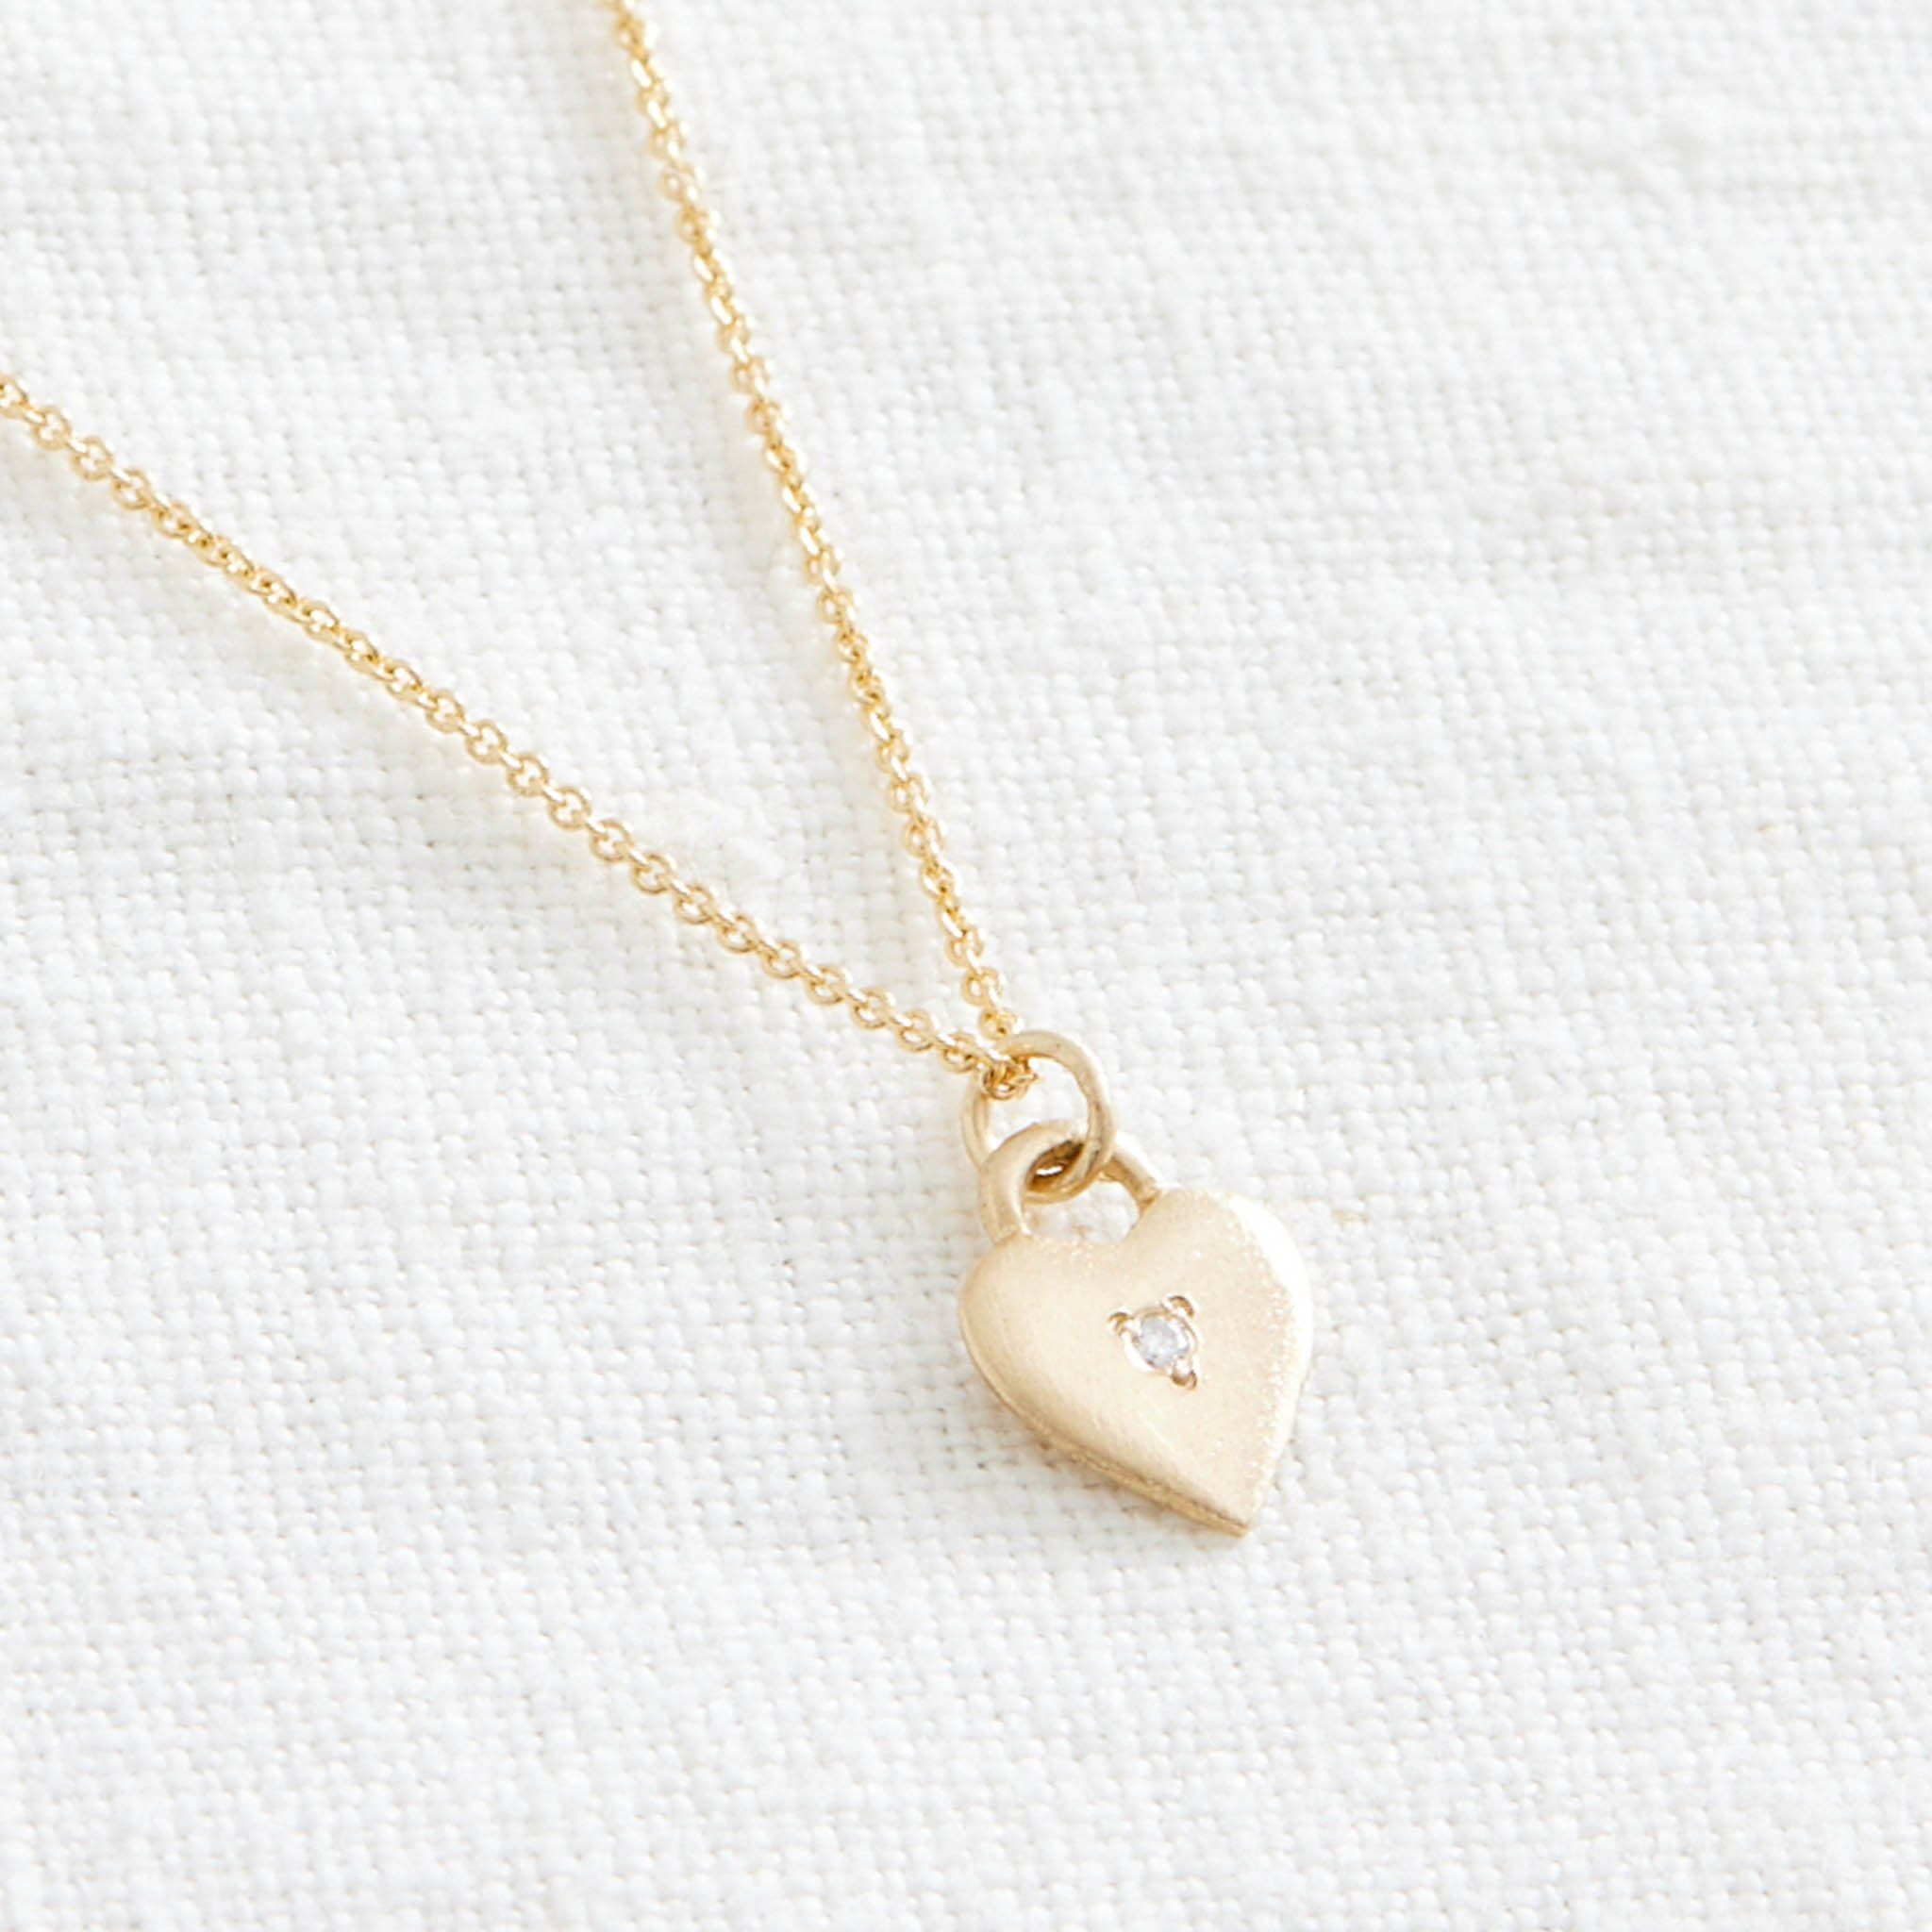 14k Love Necklace In 2021 Love Necklace Engraved Necklace Heart Pendant